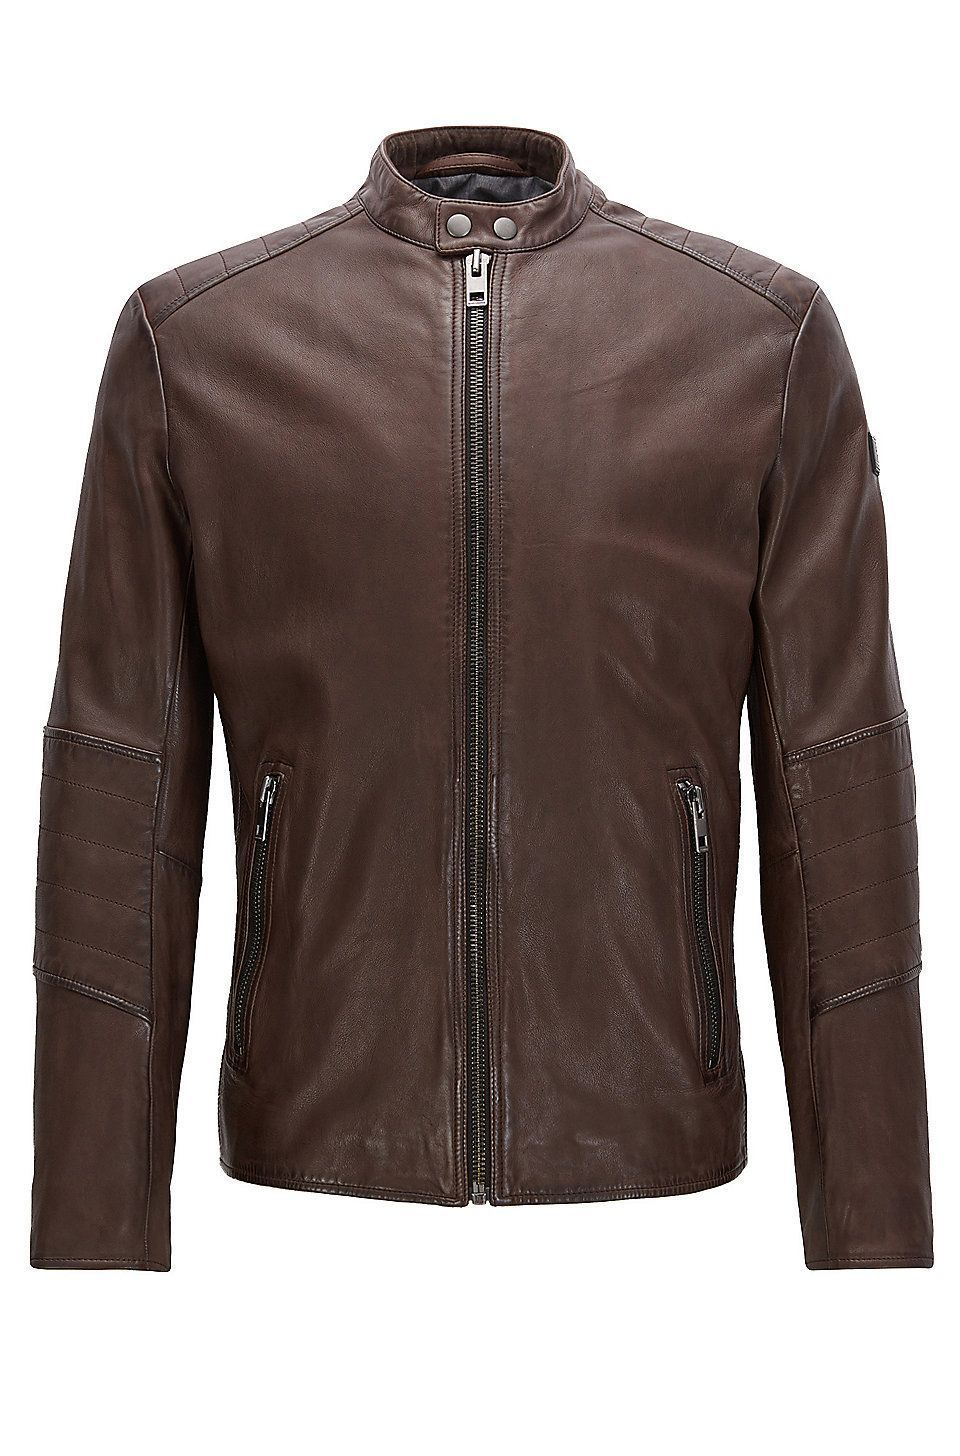 Slimfit jacket in treated leather Dark Brown from BOSS